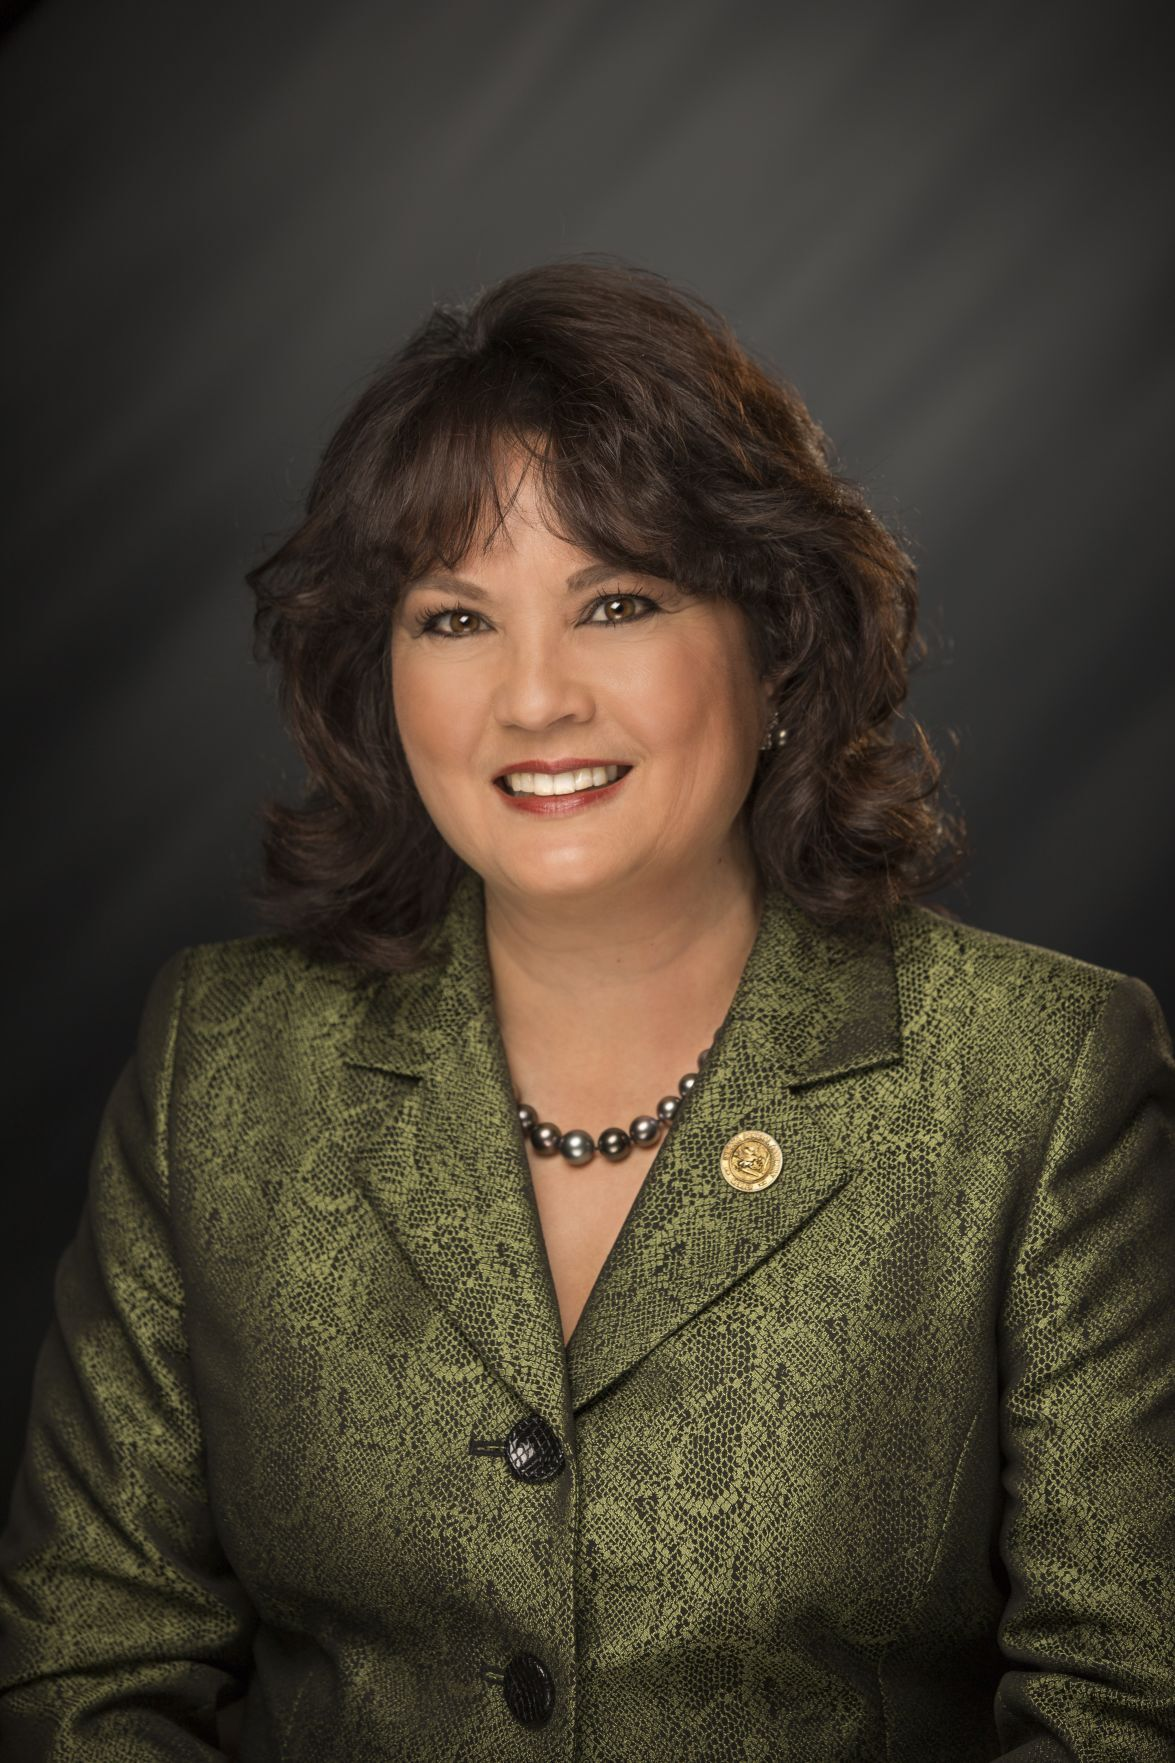 State Rep. Peggy Mayfield